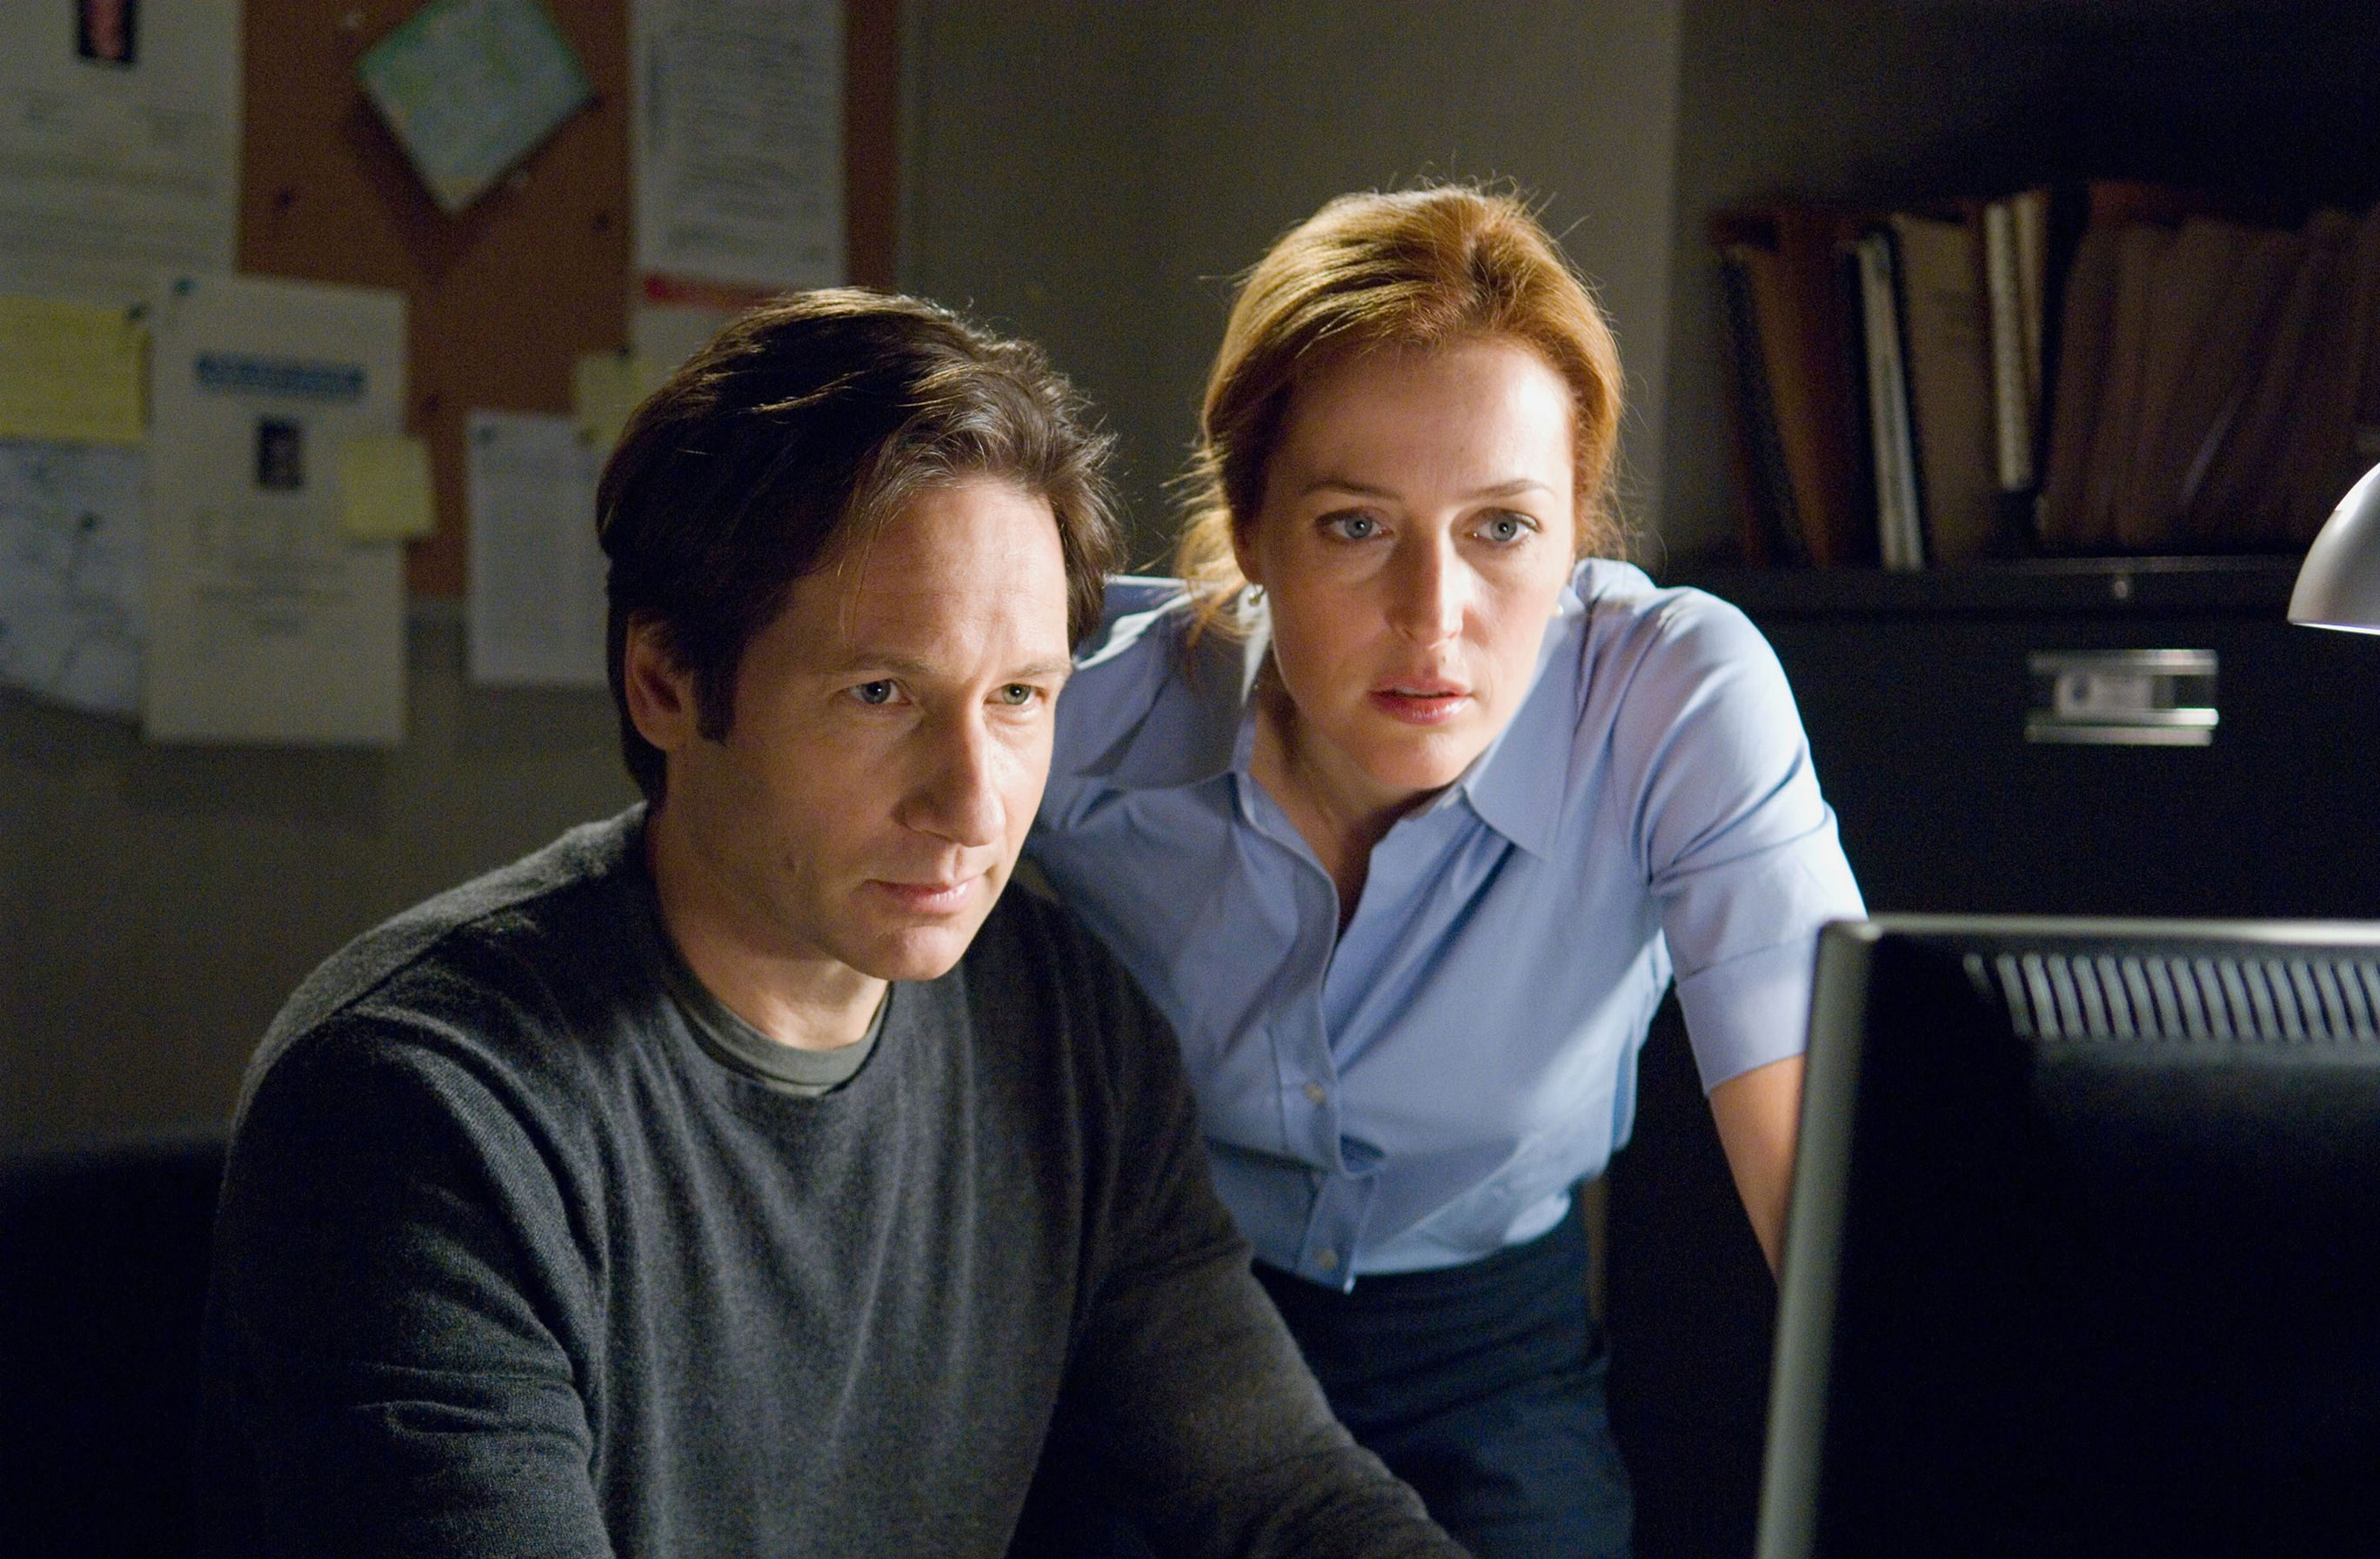 X-Files boss speaks on Gillian Anderson pay gap: 'People don't get that it's a business'